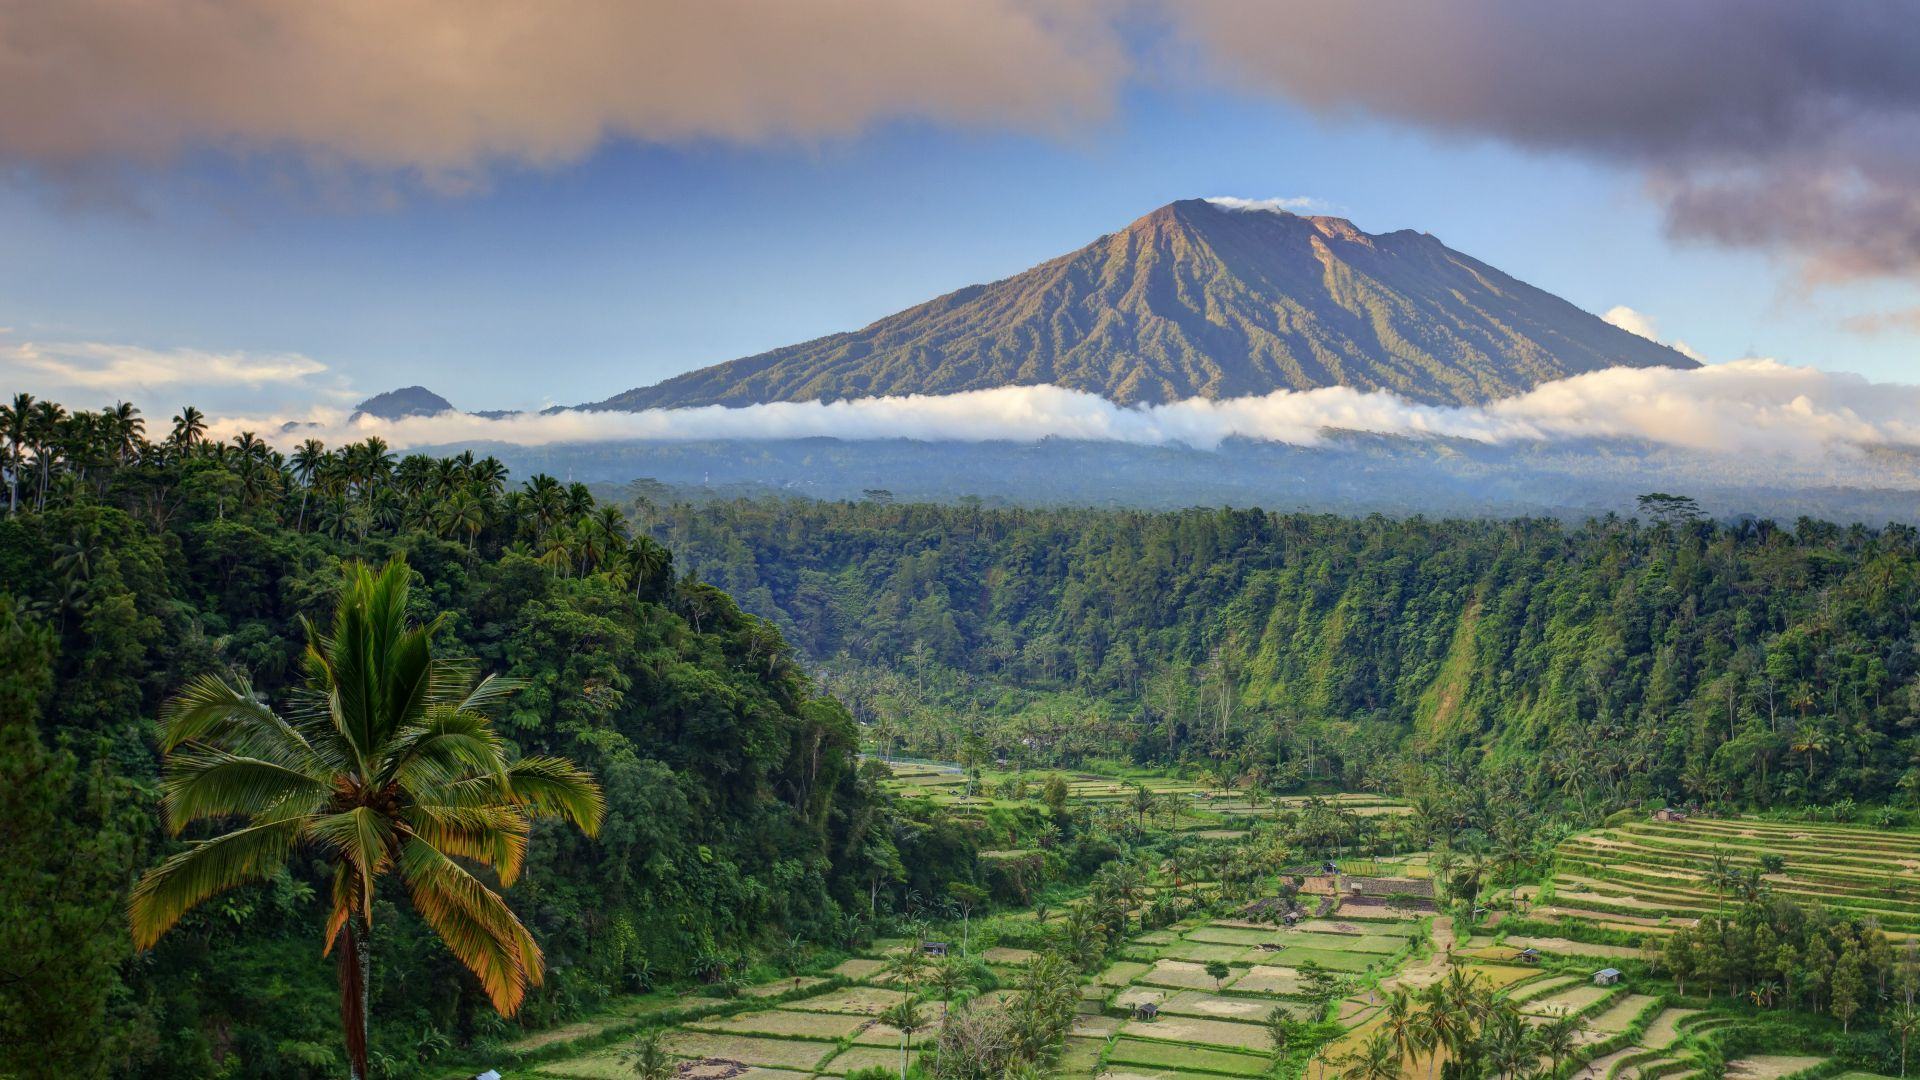 Bali, palms, trees, field, mountain, clouds, 5k (horizontal)